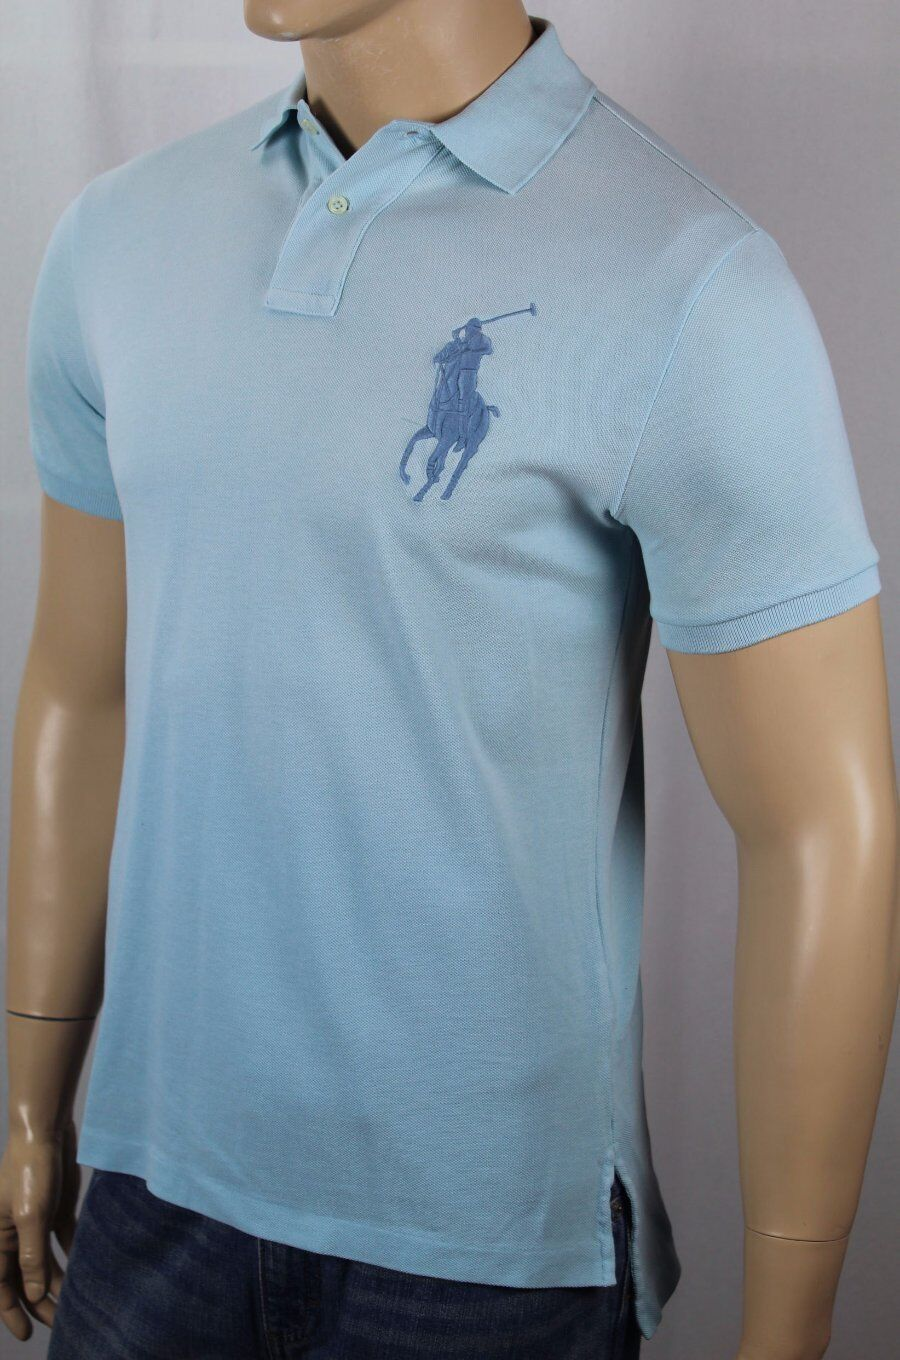 Polo Ralph Lauren bluee Classic Fit Mesh Shirt Big bluee Pony NWT